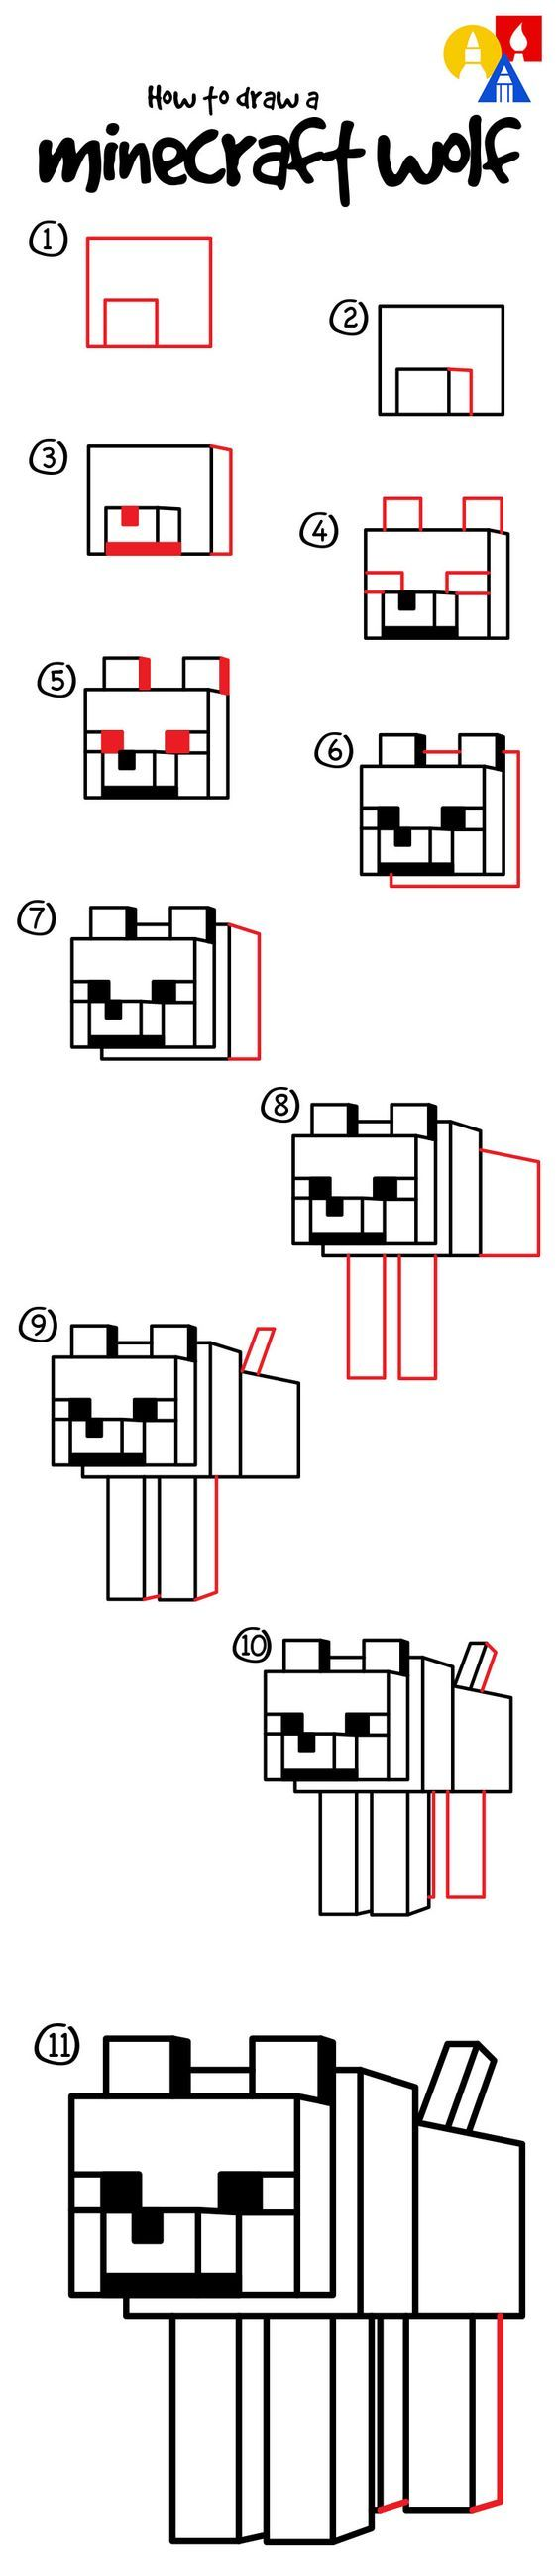 Learn how to draw a Minecraft wolf!: